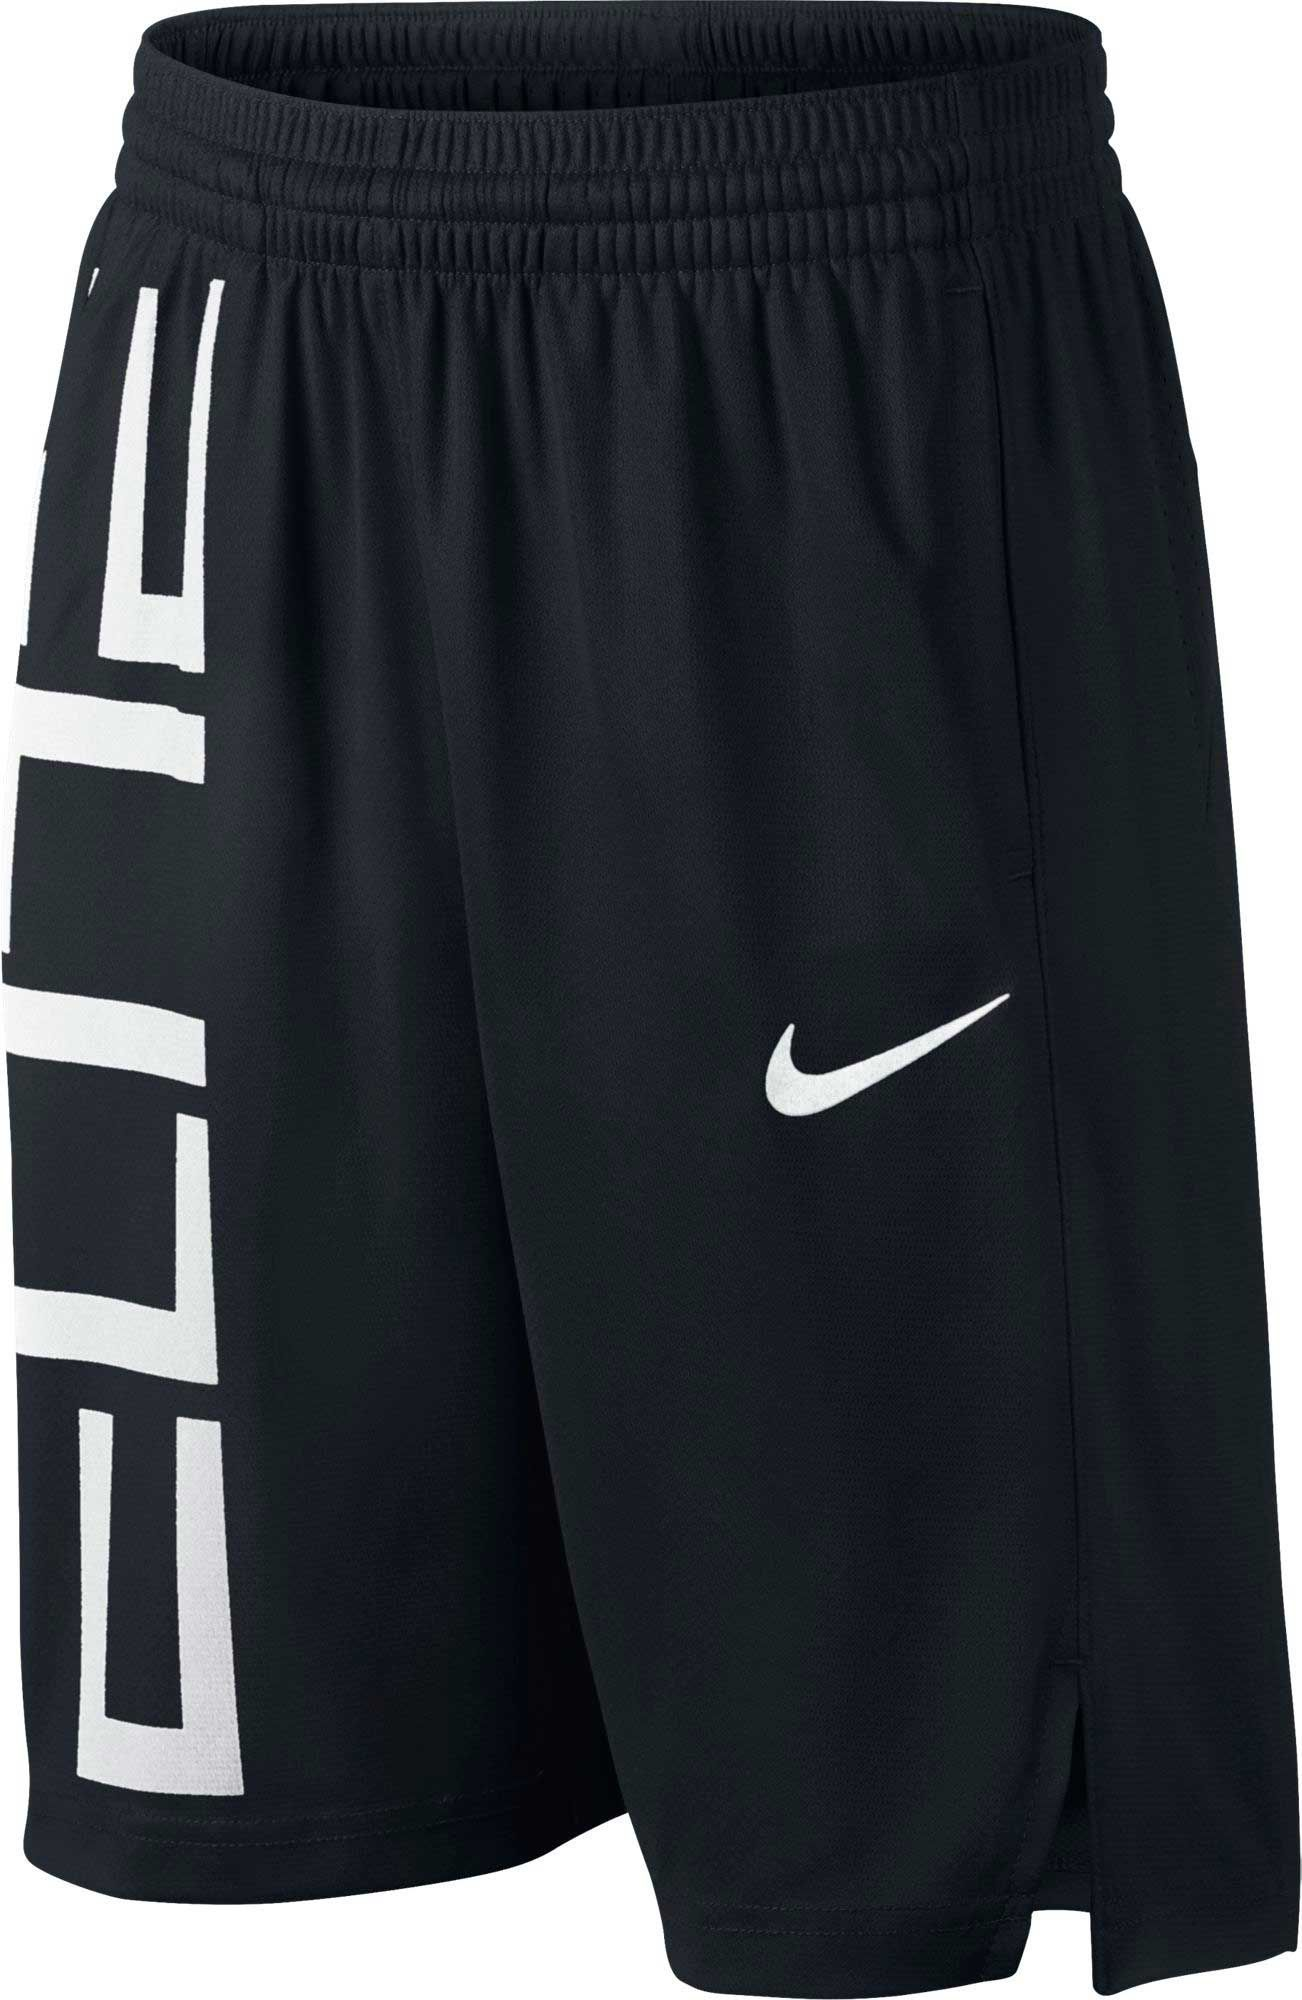 promo code 31ea3 8883c Nike Boys  Dry Elite Basketball Shorts, ...